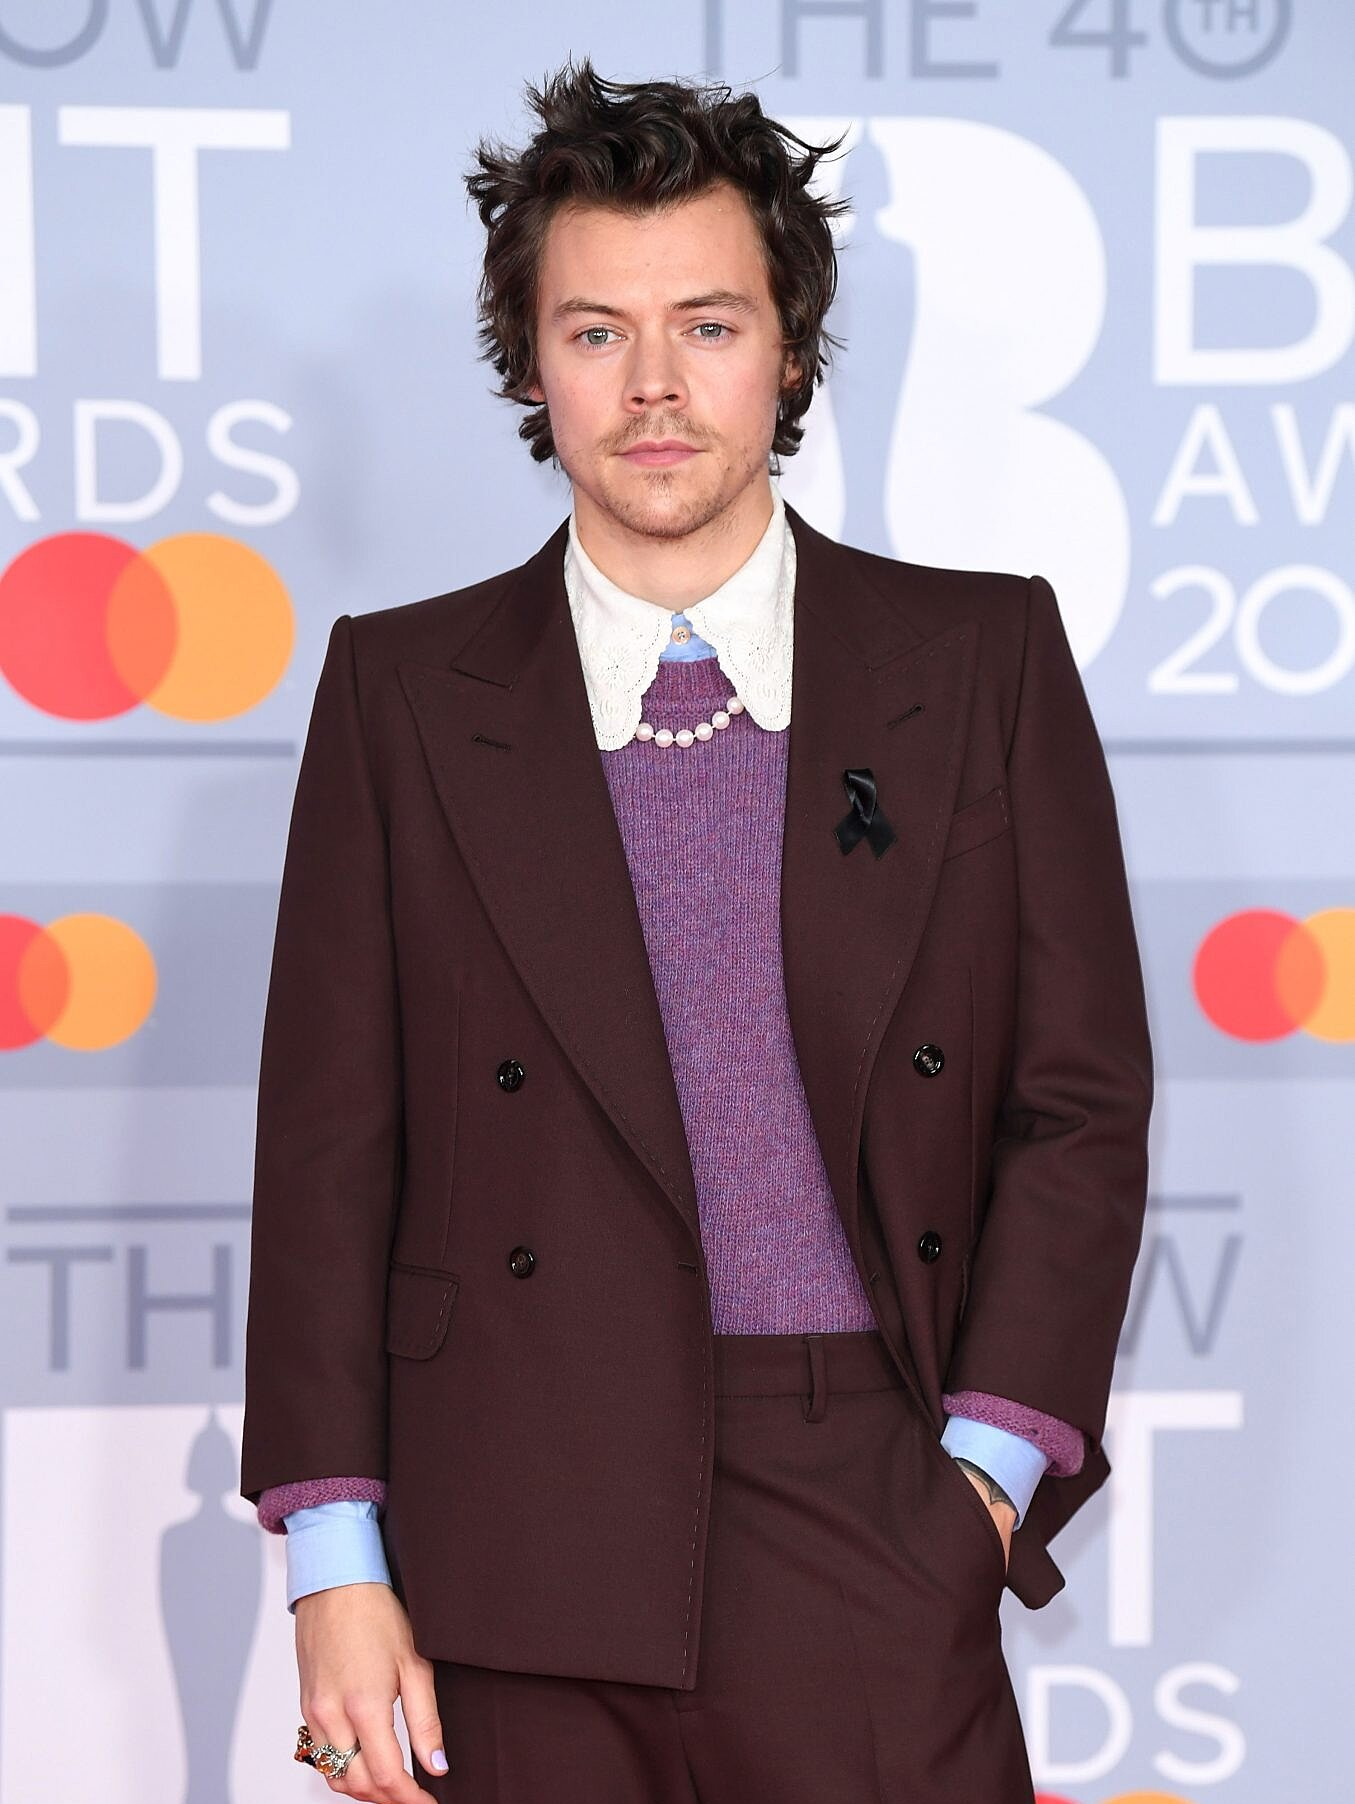 Celine Dion and Harry Styles Are Dressing Alike  InStyle